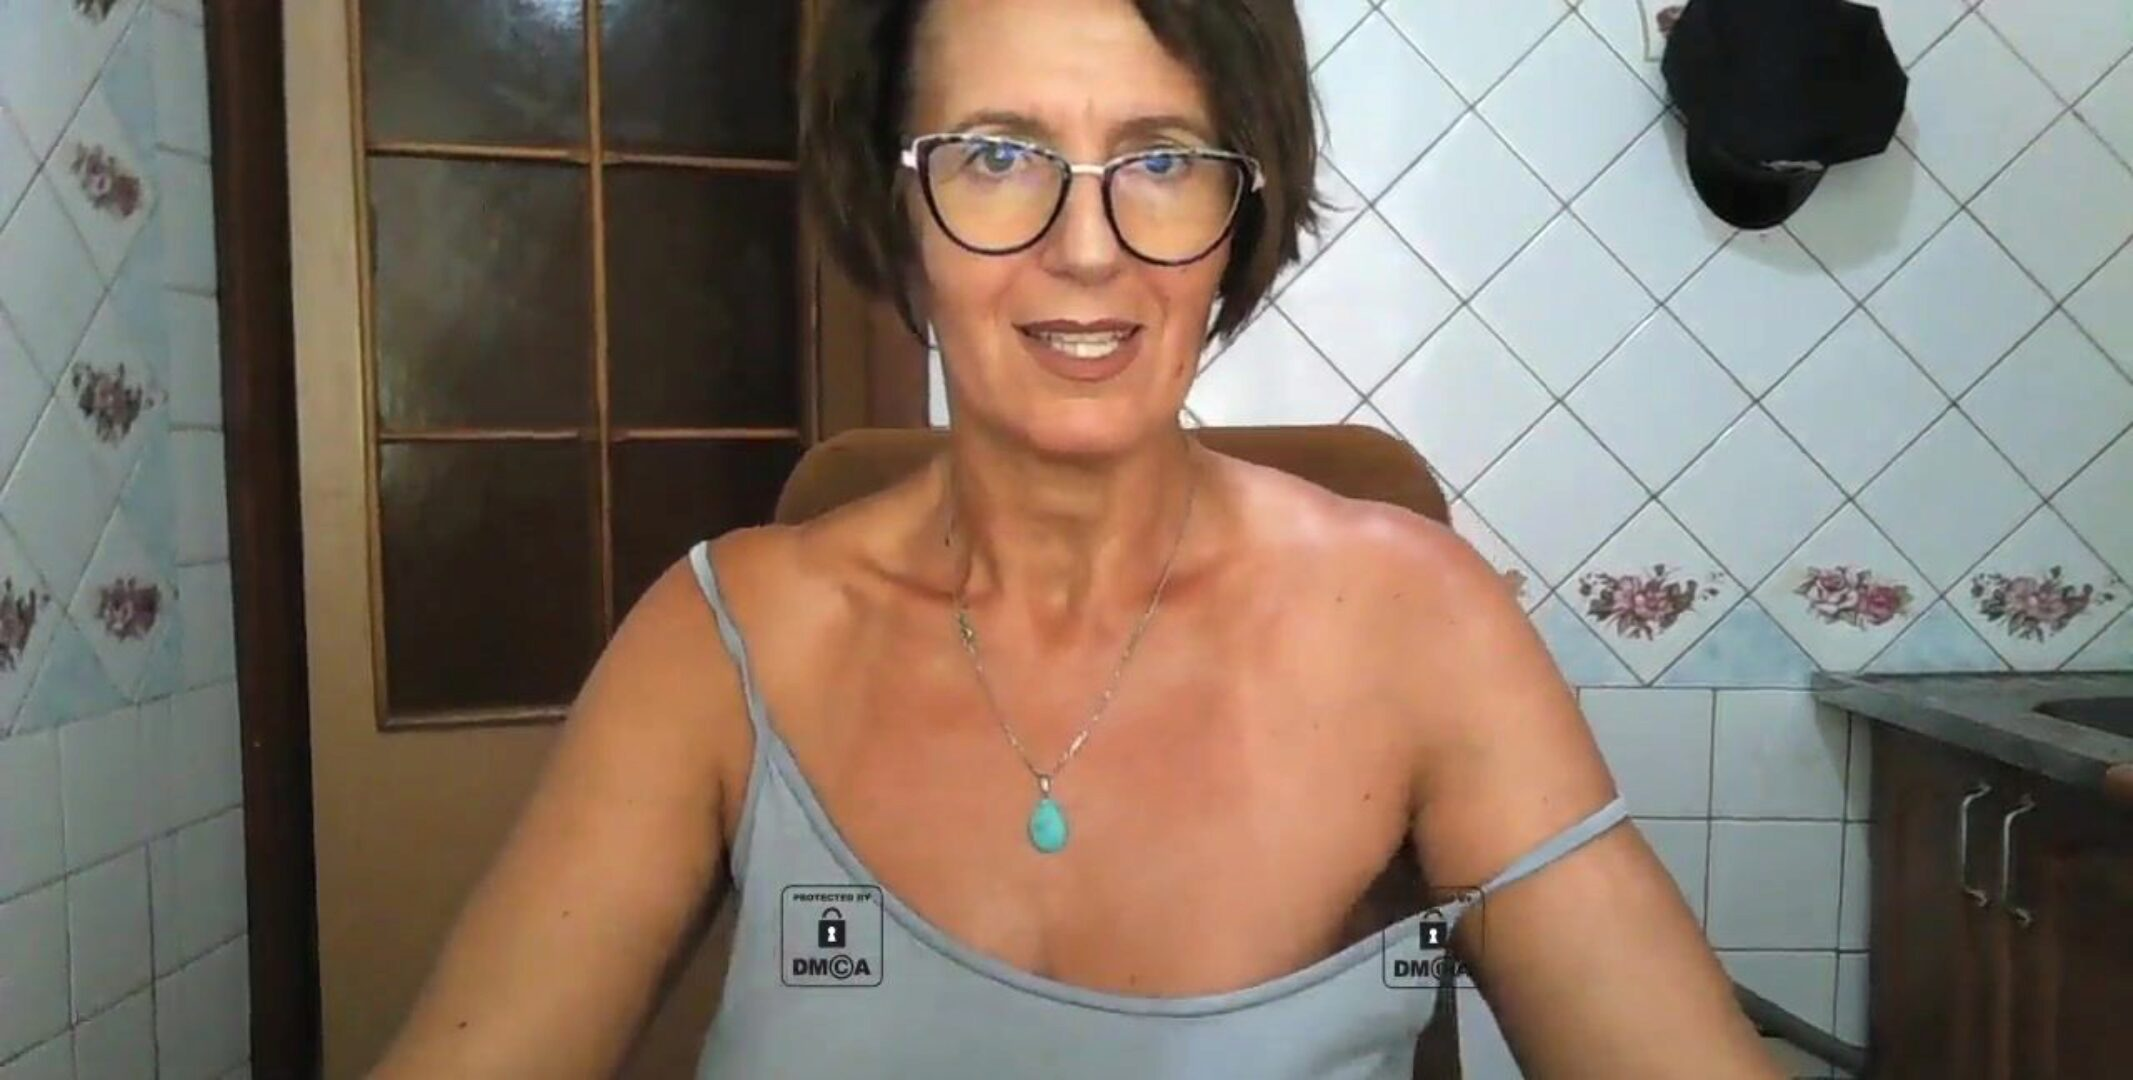 Lukerya web Lonely housewife streams her hot elderly bod on camera, displays concupiscent nipps slaps her large impressive wazoo